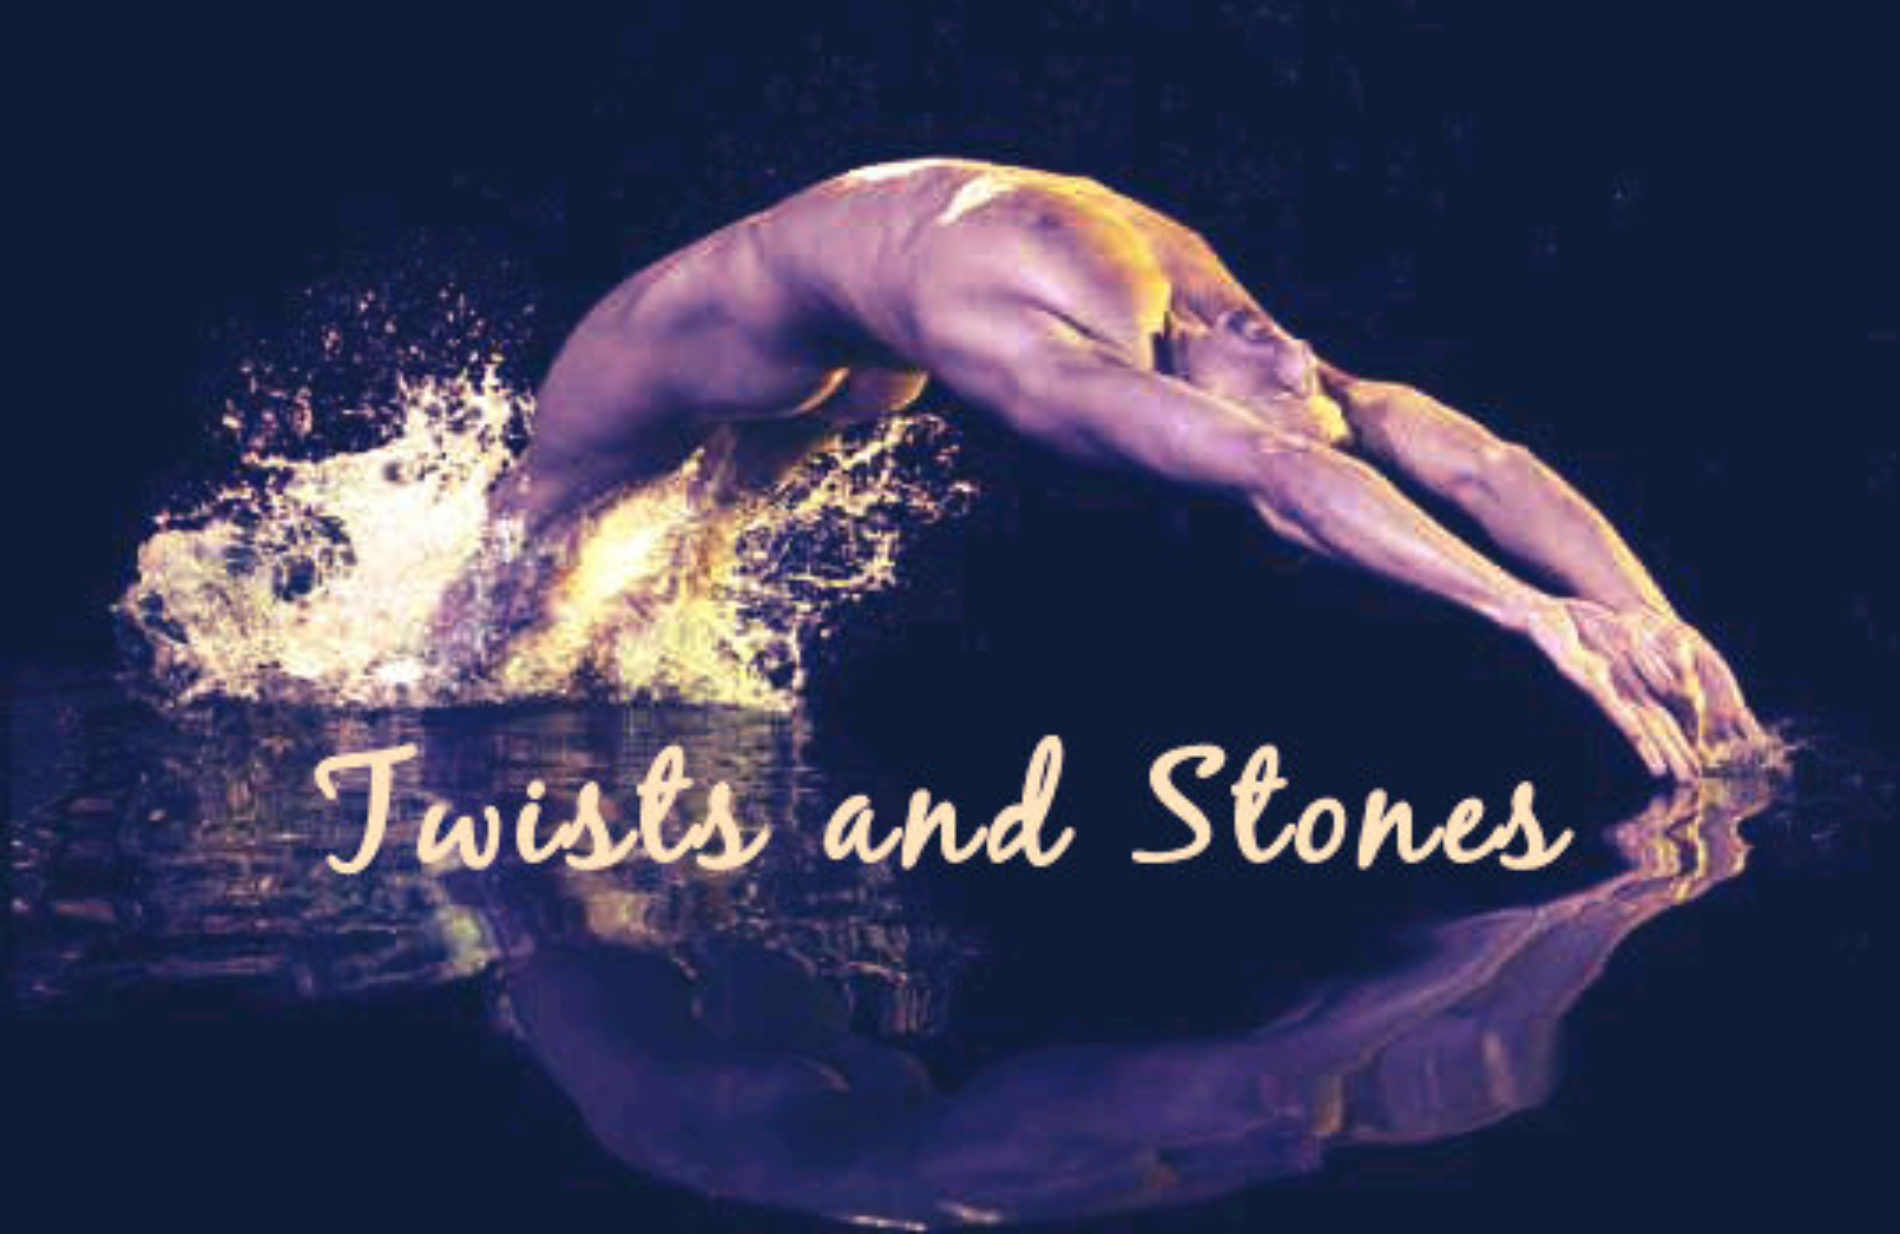 TWISTS AND STONES (Episode 6)